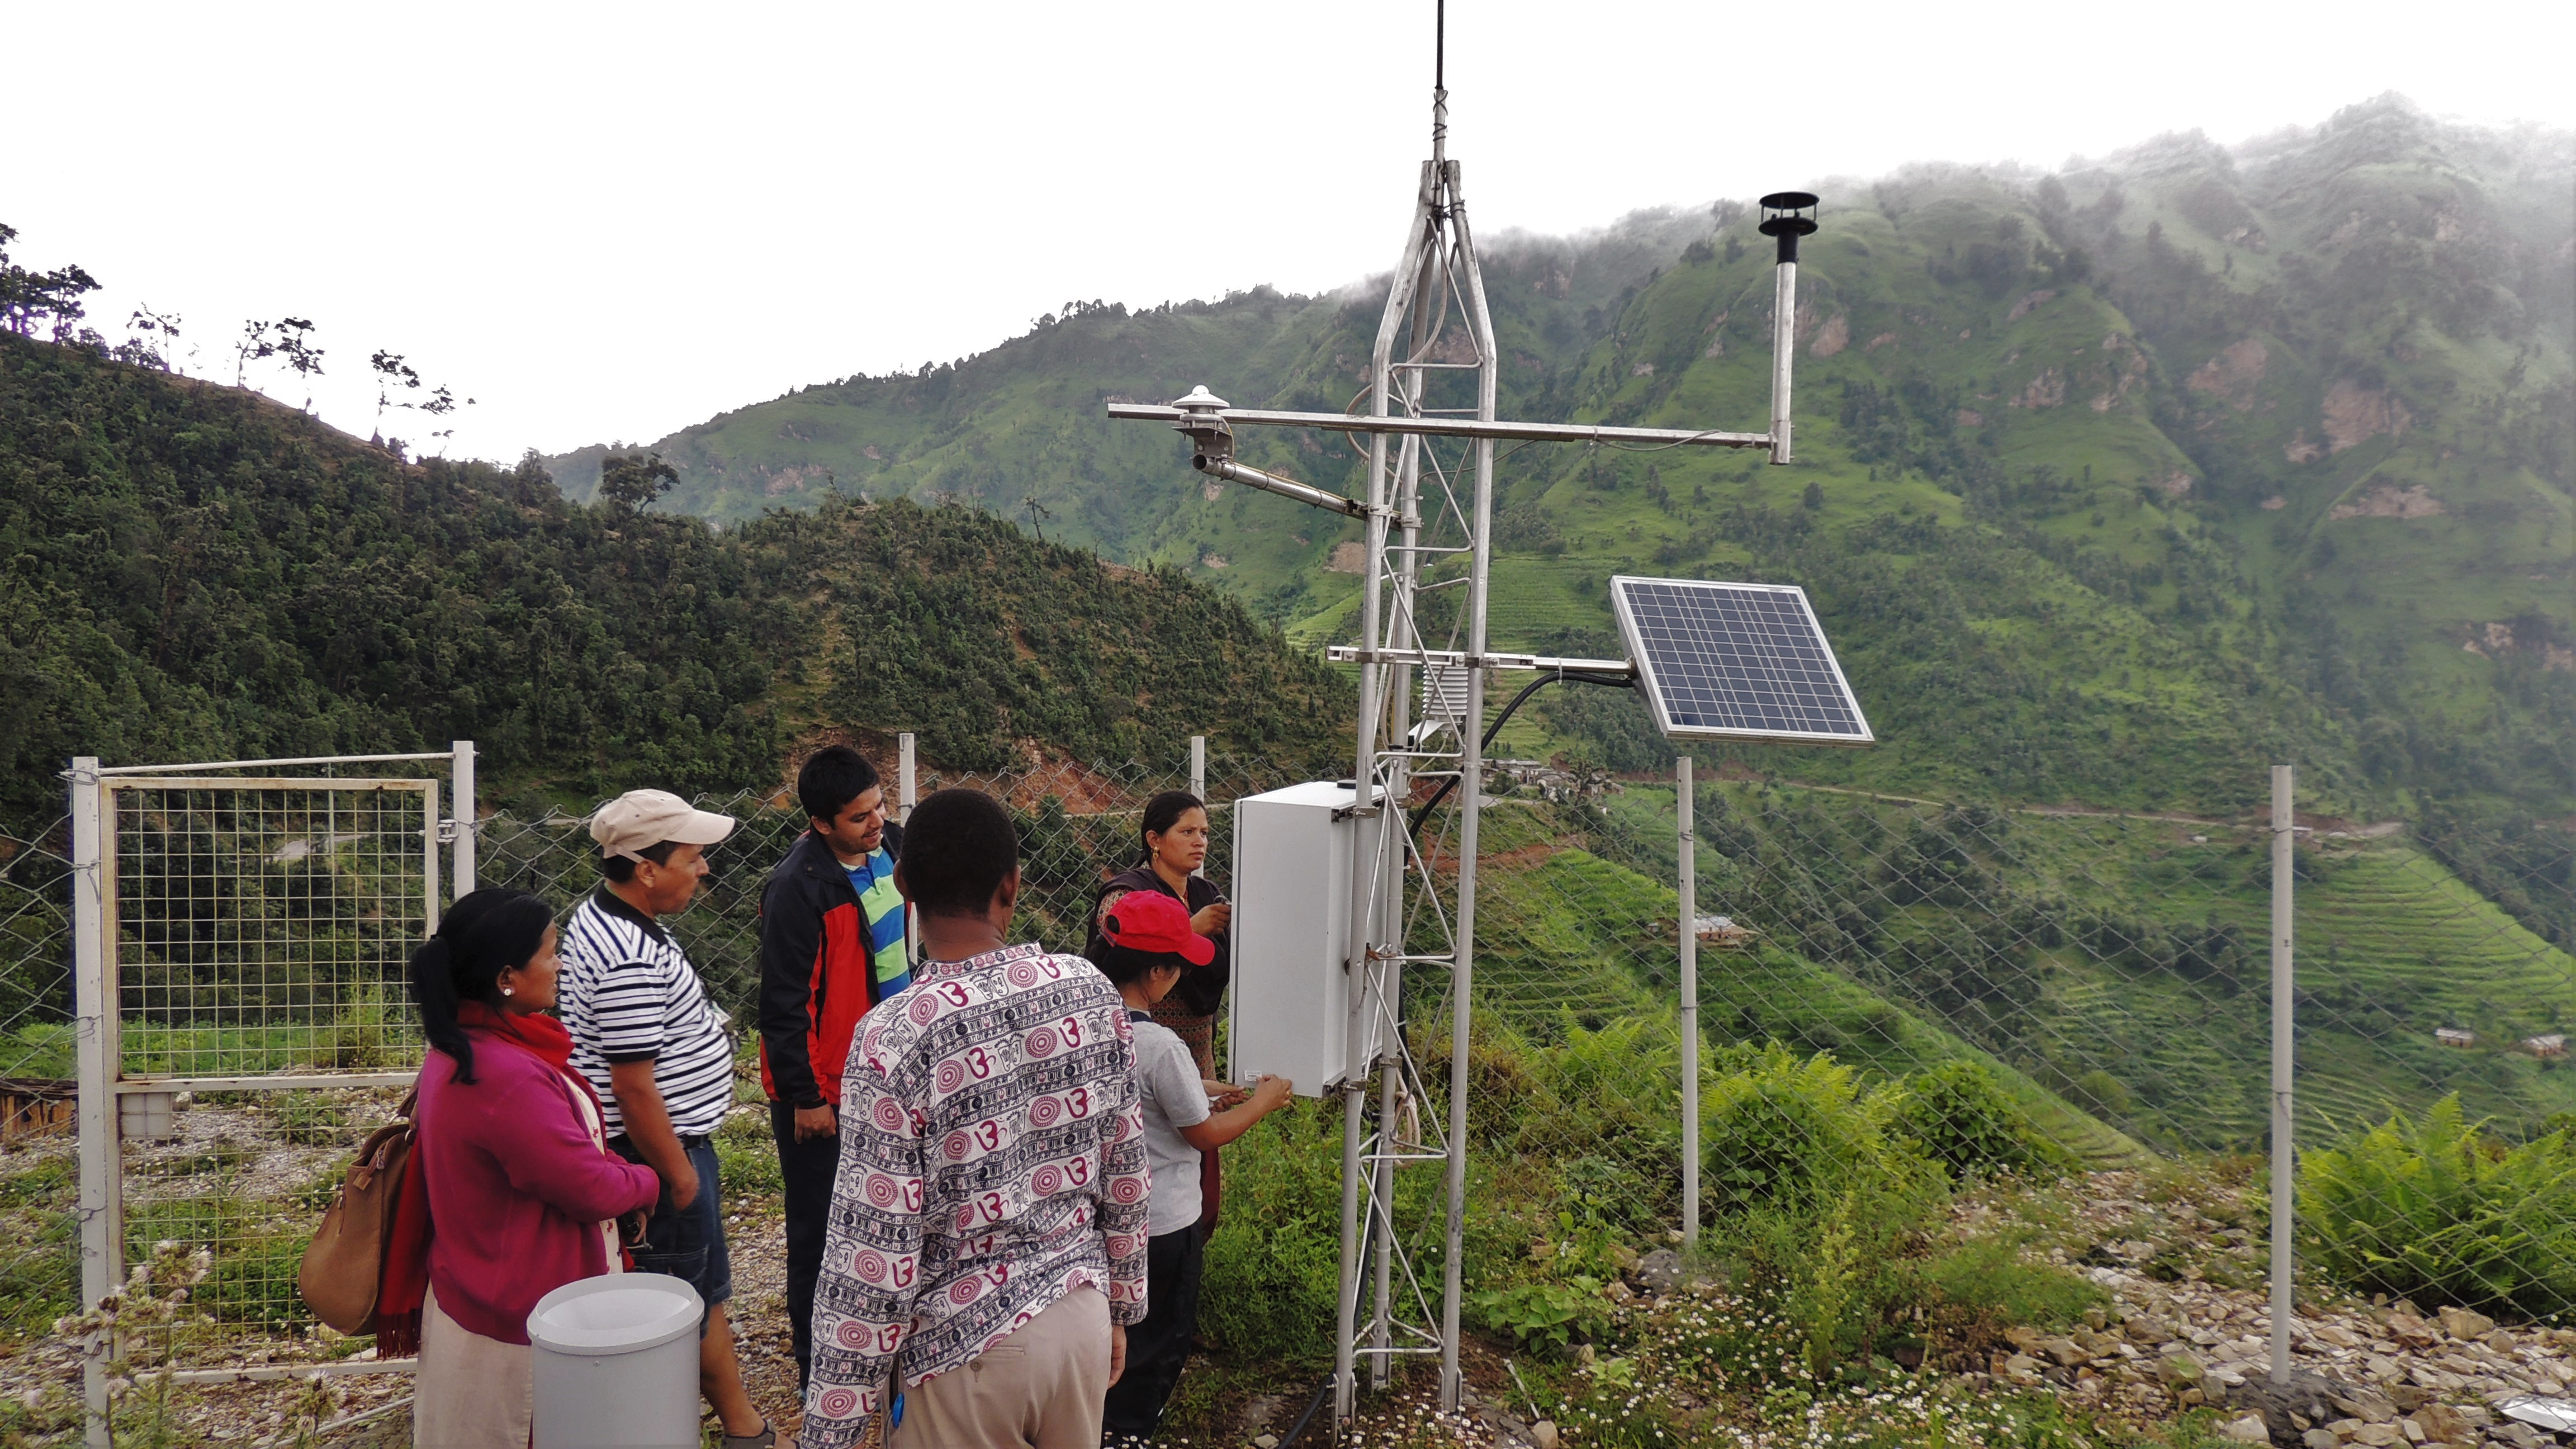 A group of people gather around the bottom of a weather station located on the slopes of a mountain.